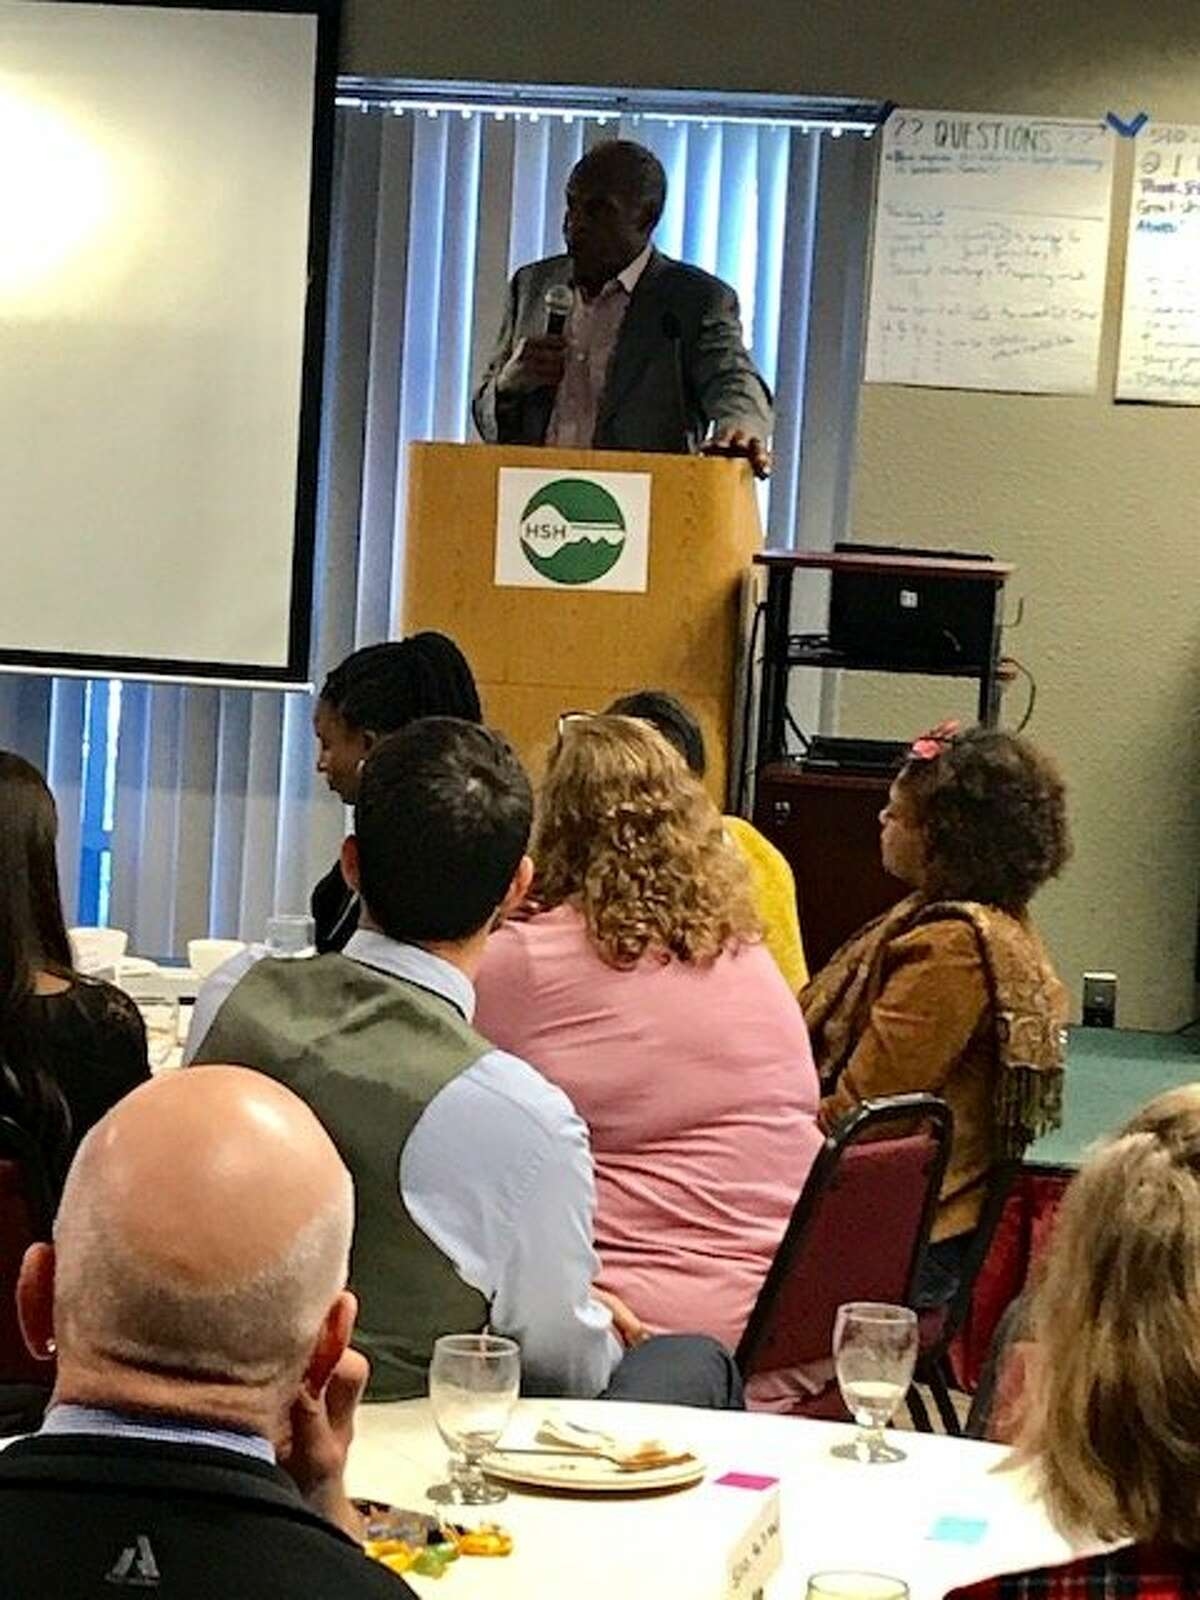 Actor and activist Danny Glover addresses a gathering of nonprofits that address homelessness in San Francisco on Dec. 7, 2018.